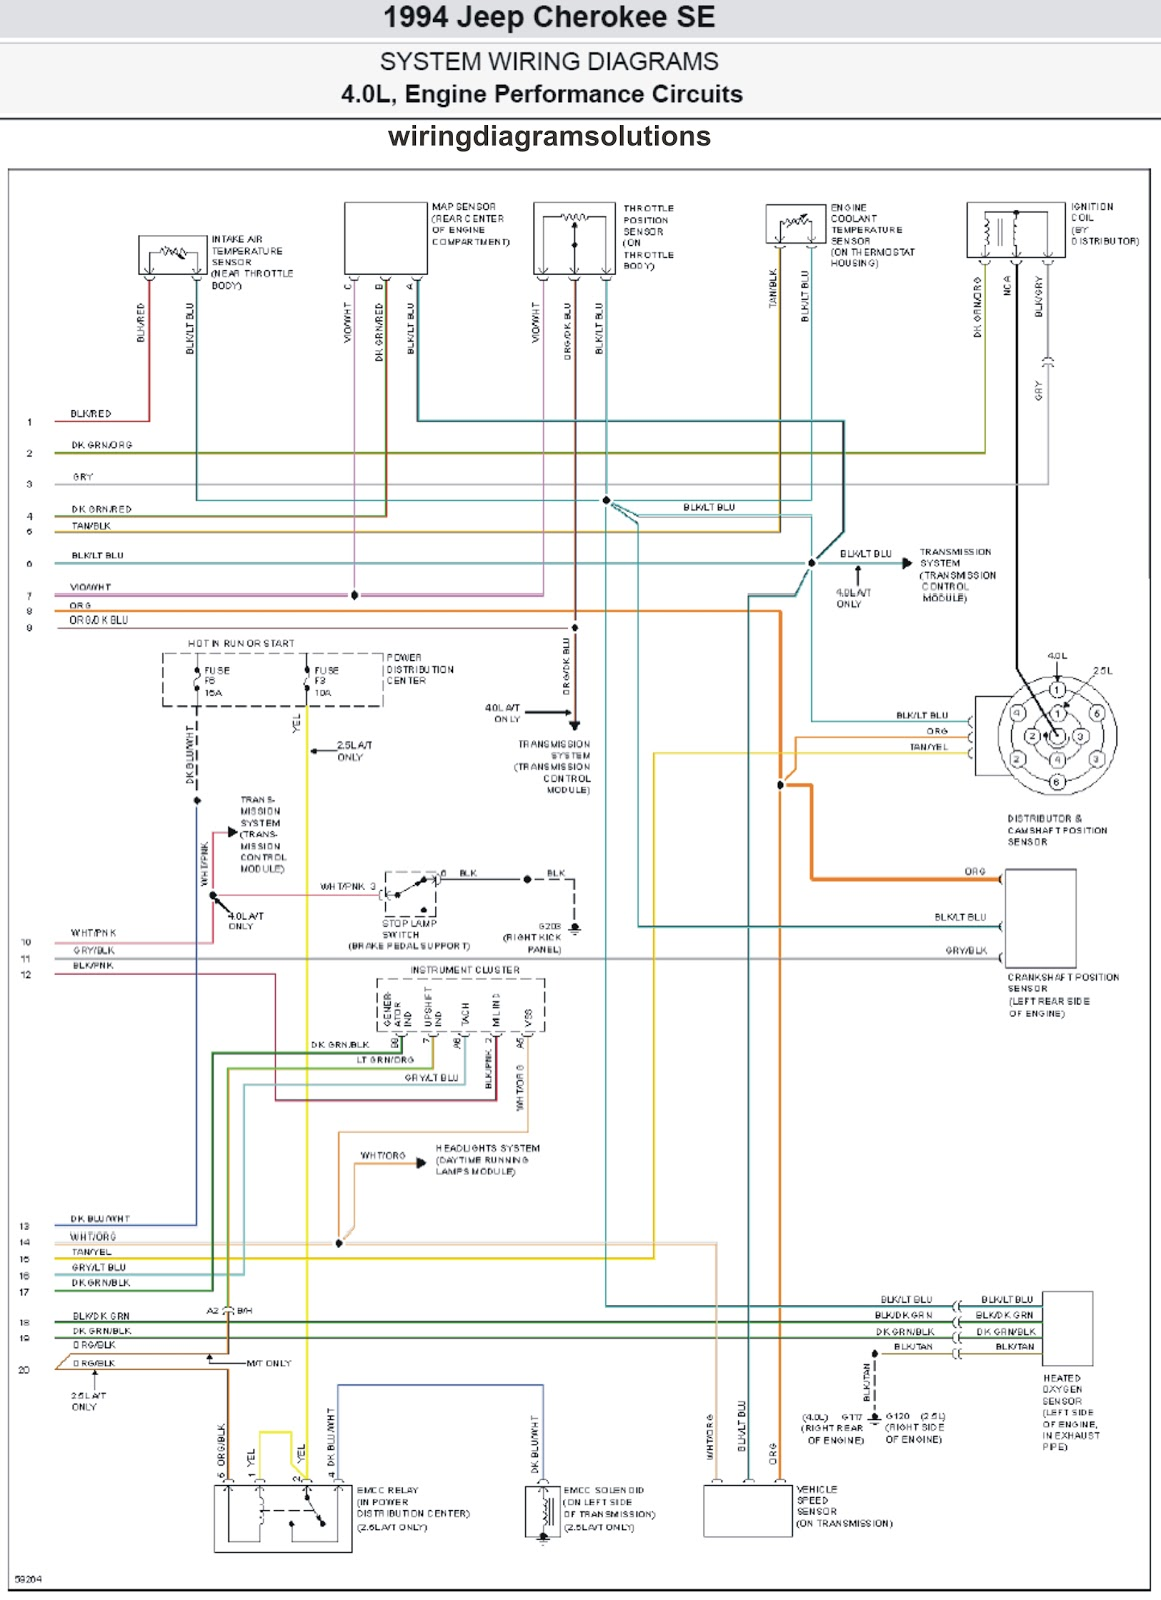 1999 Kia Sephia Wiring Diagram Schematic Wiring Diagrams \u2022 2011 Kia  Optima Fuse Box Diagram 2001 Kia Sephia Fuse Box Diagram Wiring Schematic